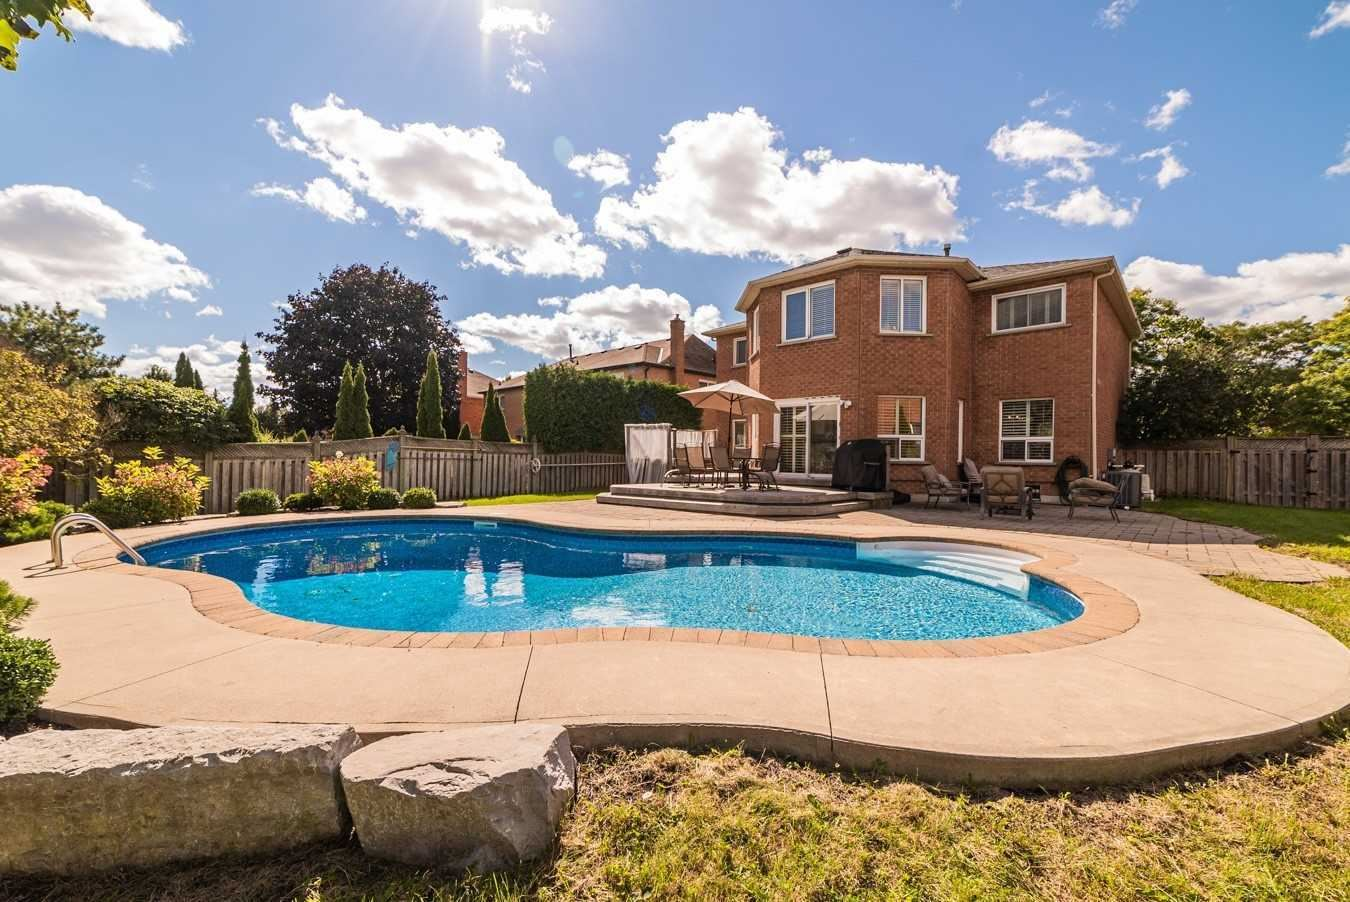 22 Woodhaven Cres, Whitby, ON L1R1R1 - MLS#: E5388577